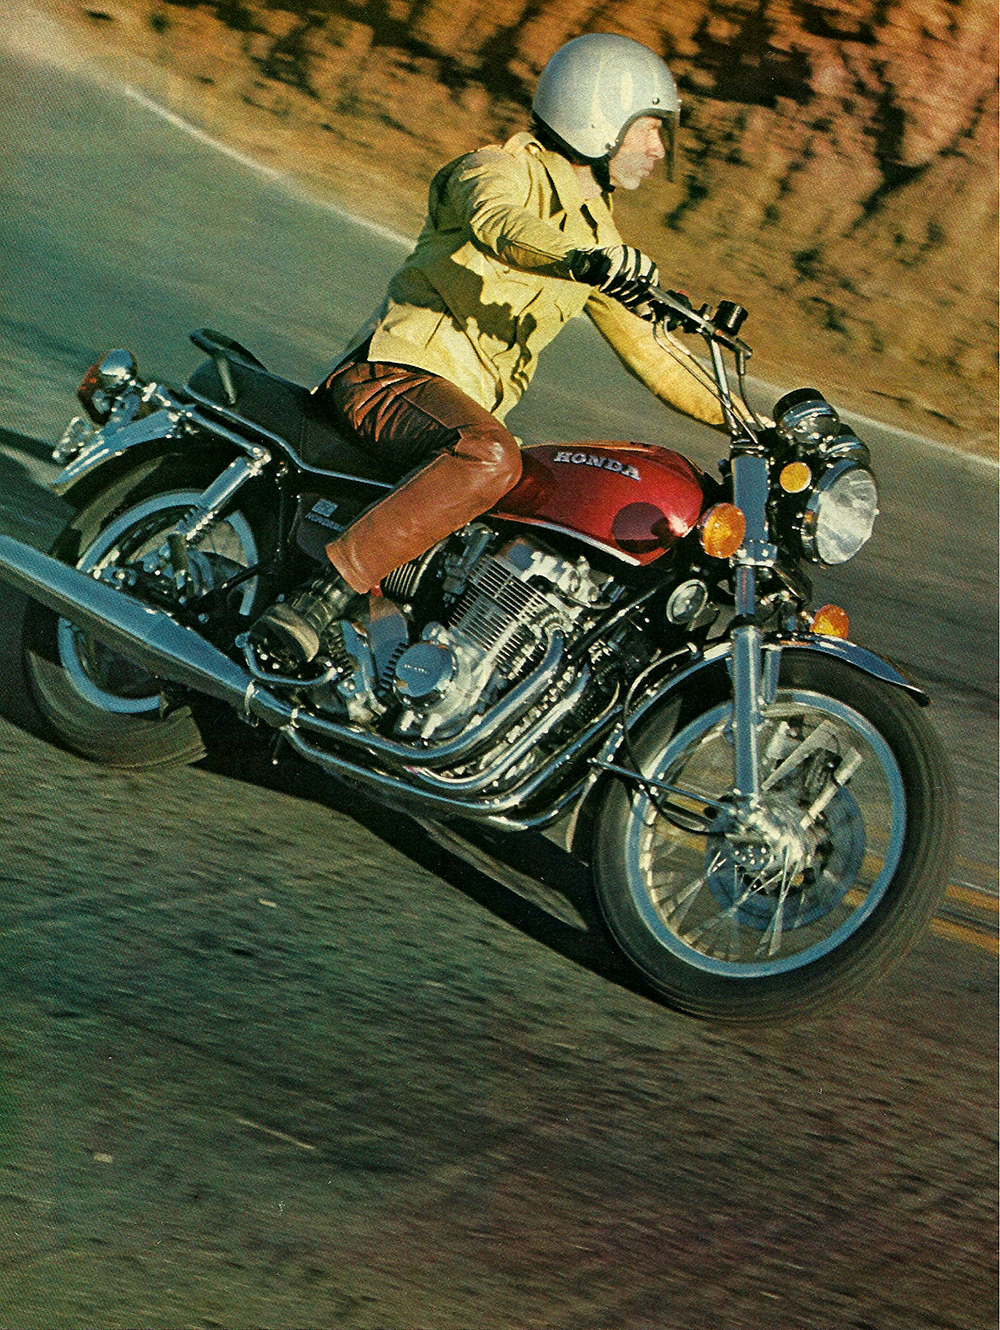 1976 Honda CB750A road test 1.JPG